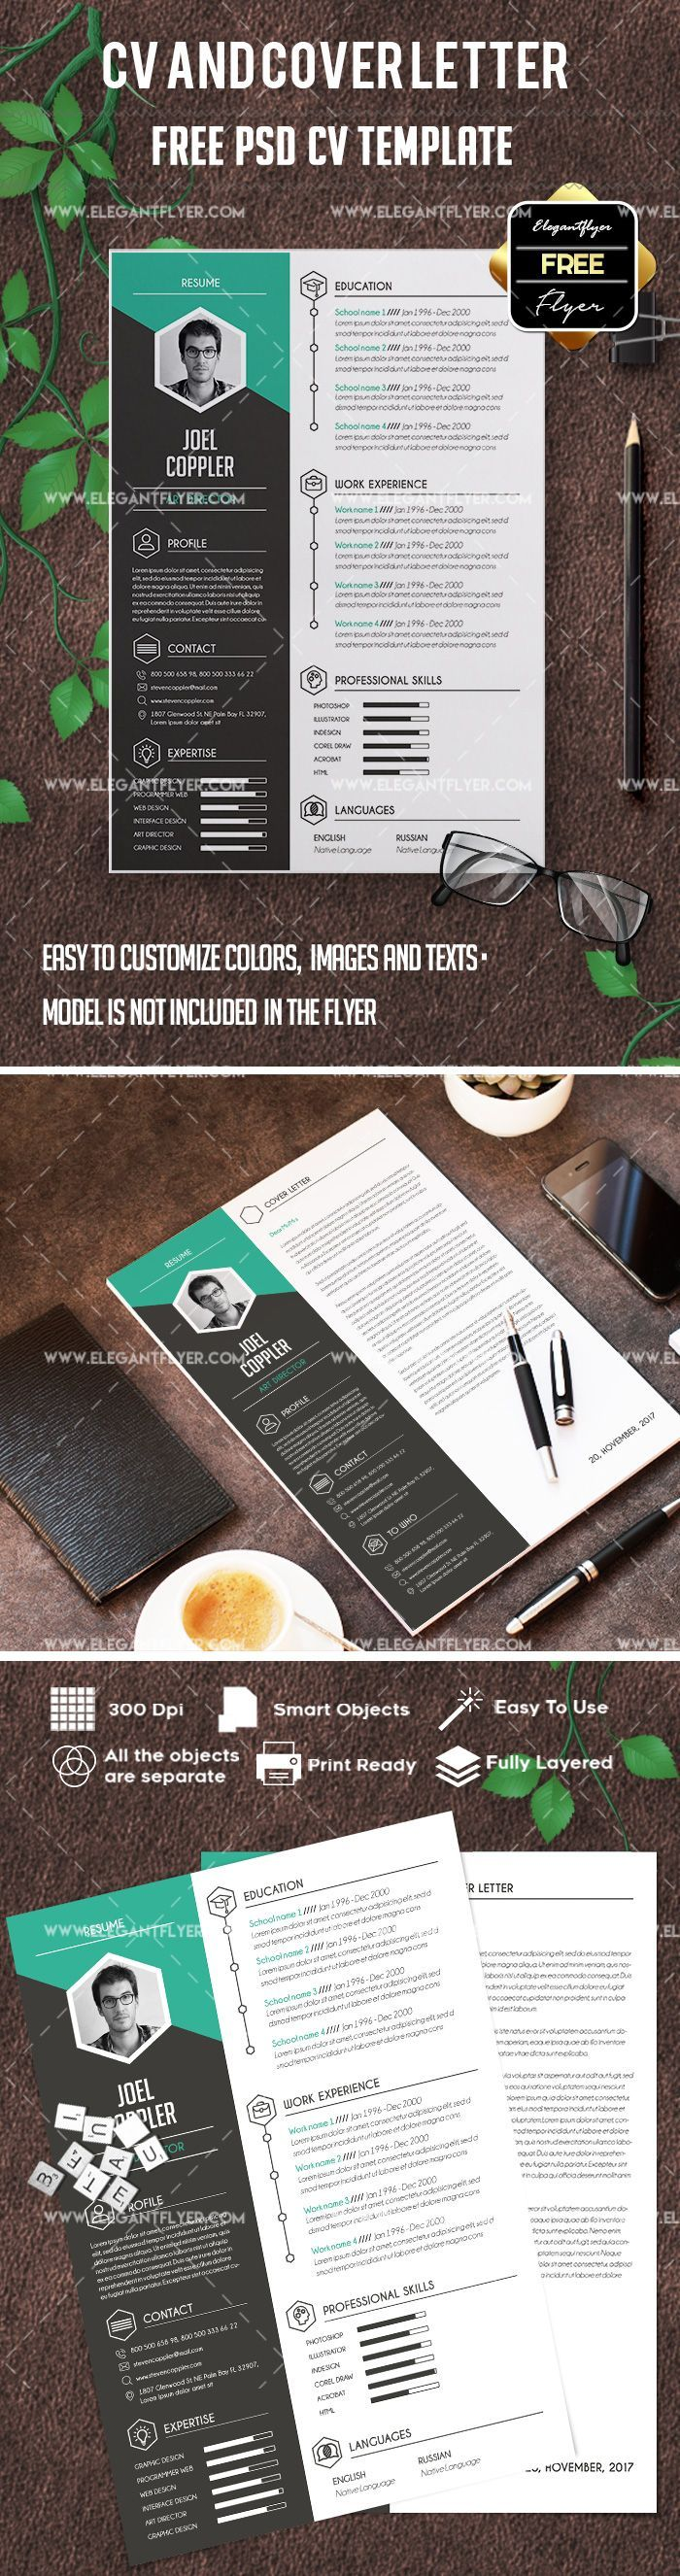 Chronological Resume Samples%0A https   www elegantflyer com freeresumetemplates